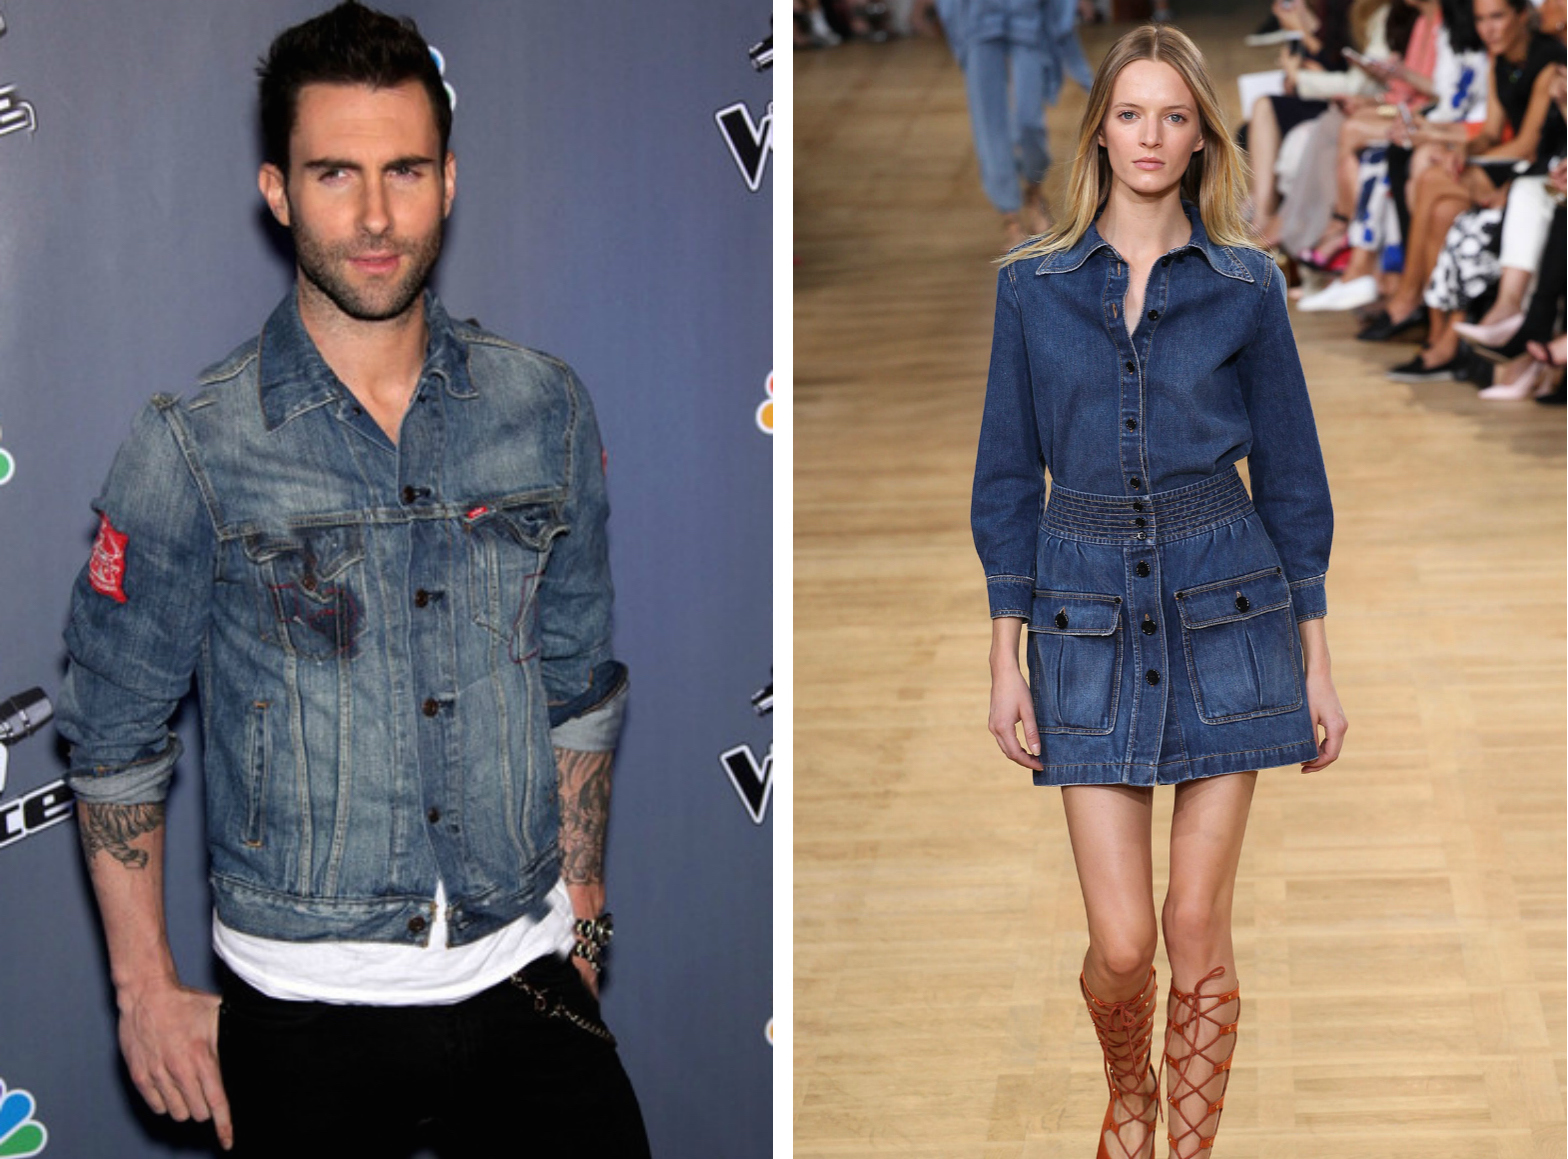 From left to right: Adam Levine wearing a denim jacket  , and the ChloéSpring 2015 Collection.